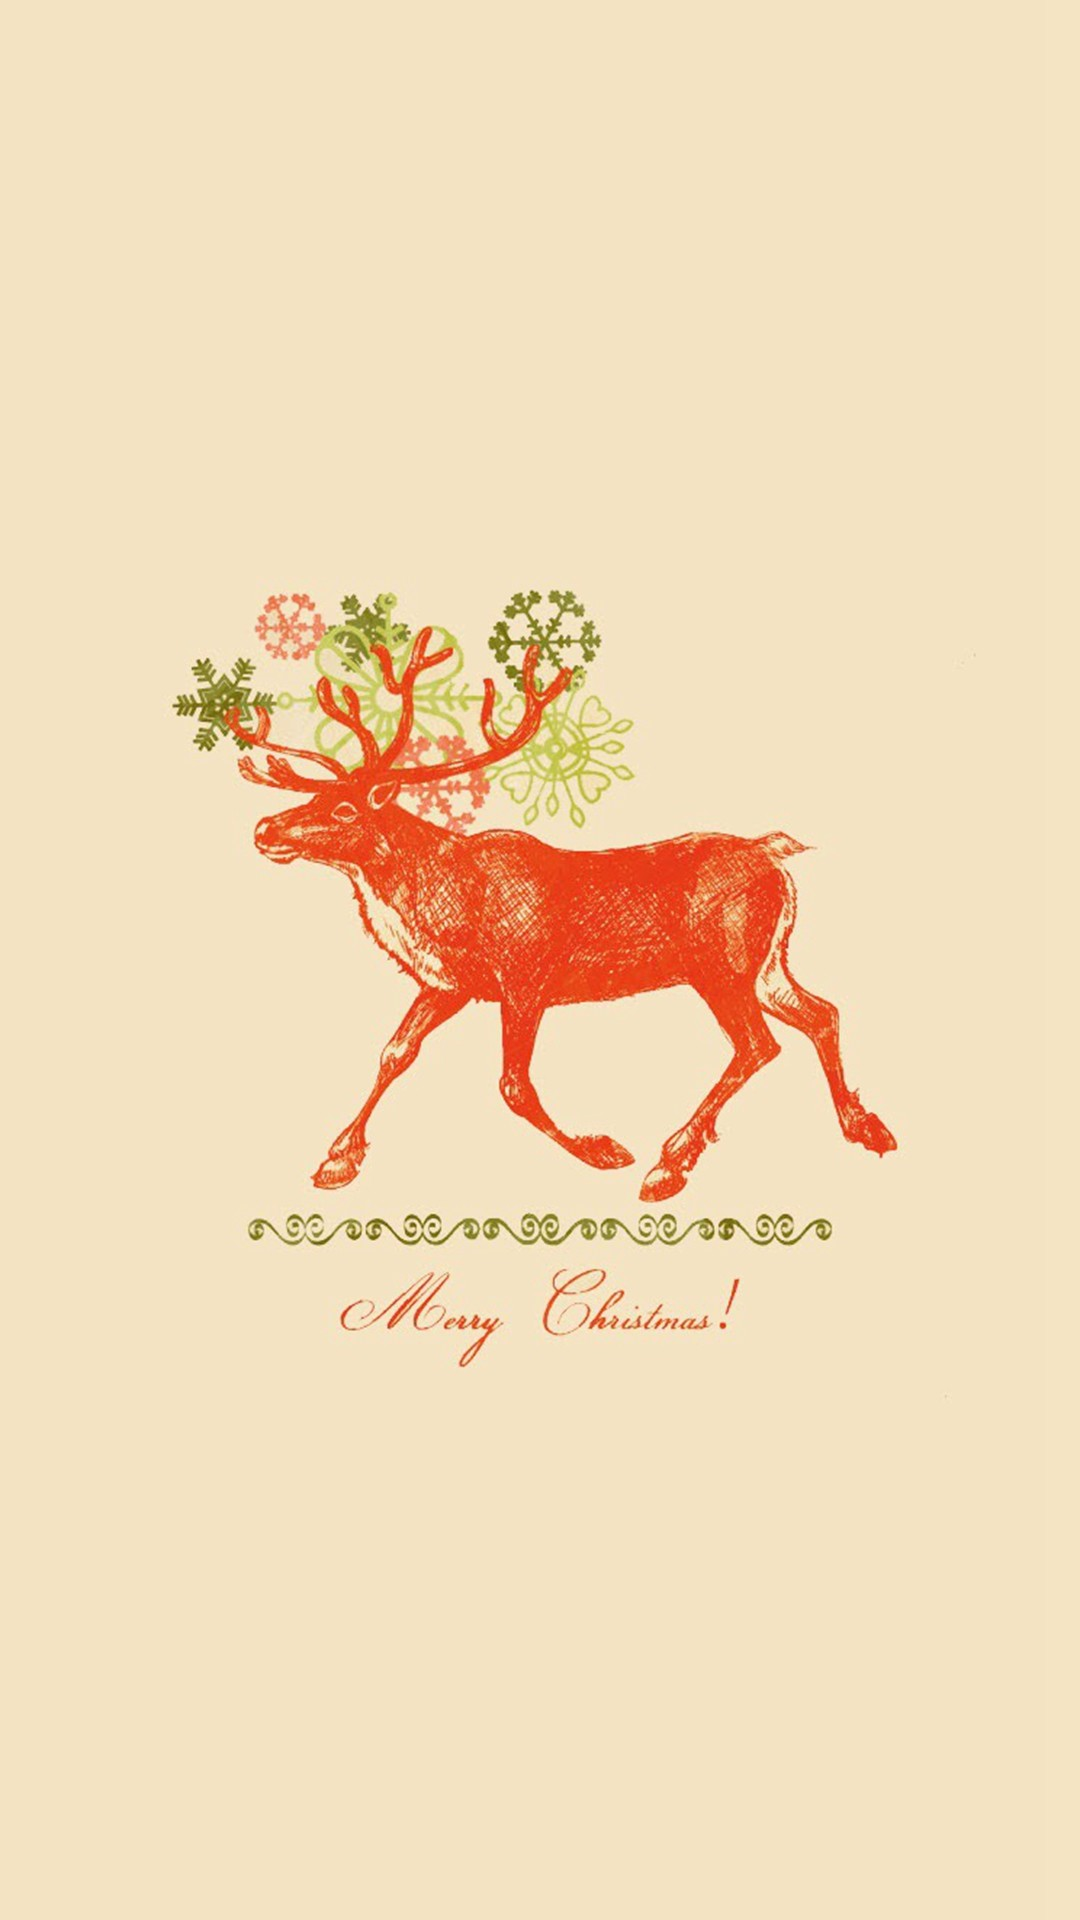 1080x1920 Merry Christmas Vintage Reindeer Illustration iPhone photos.